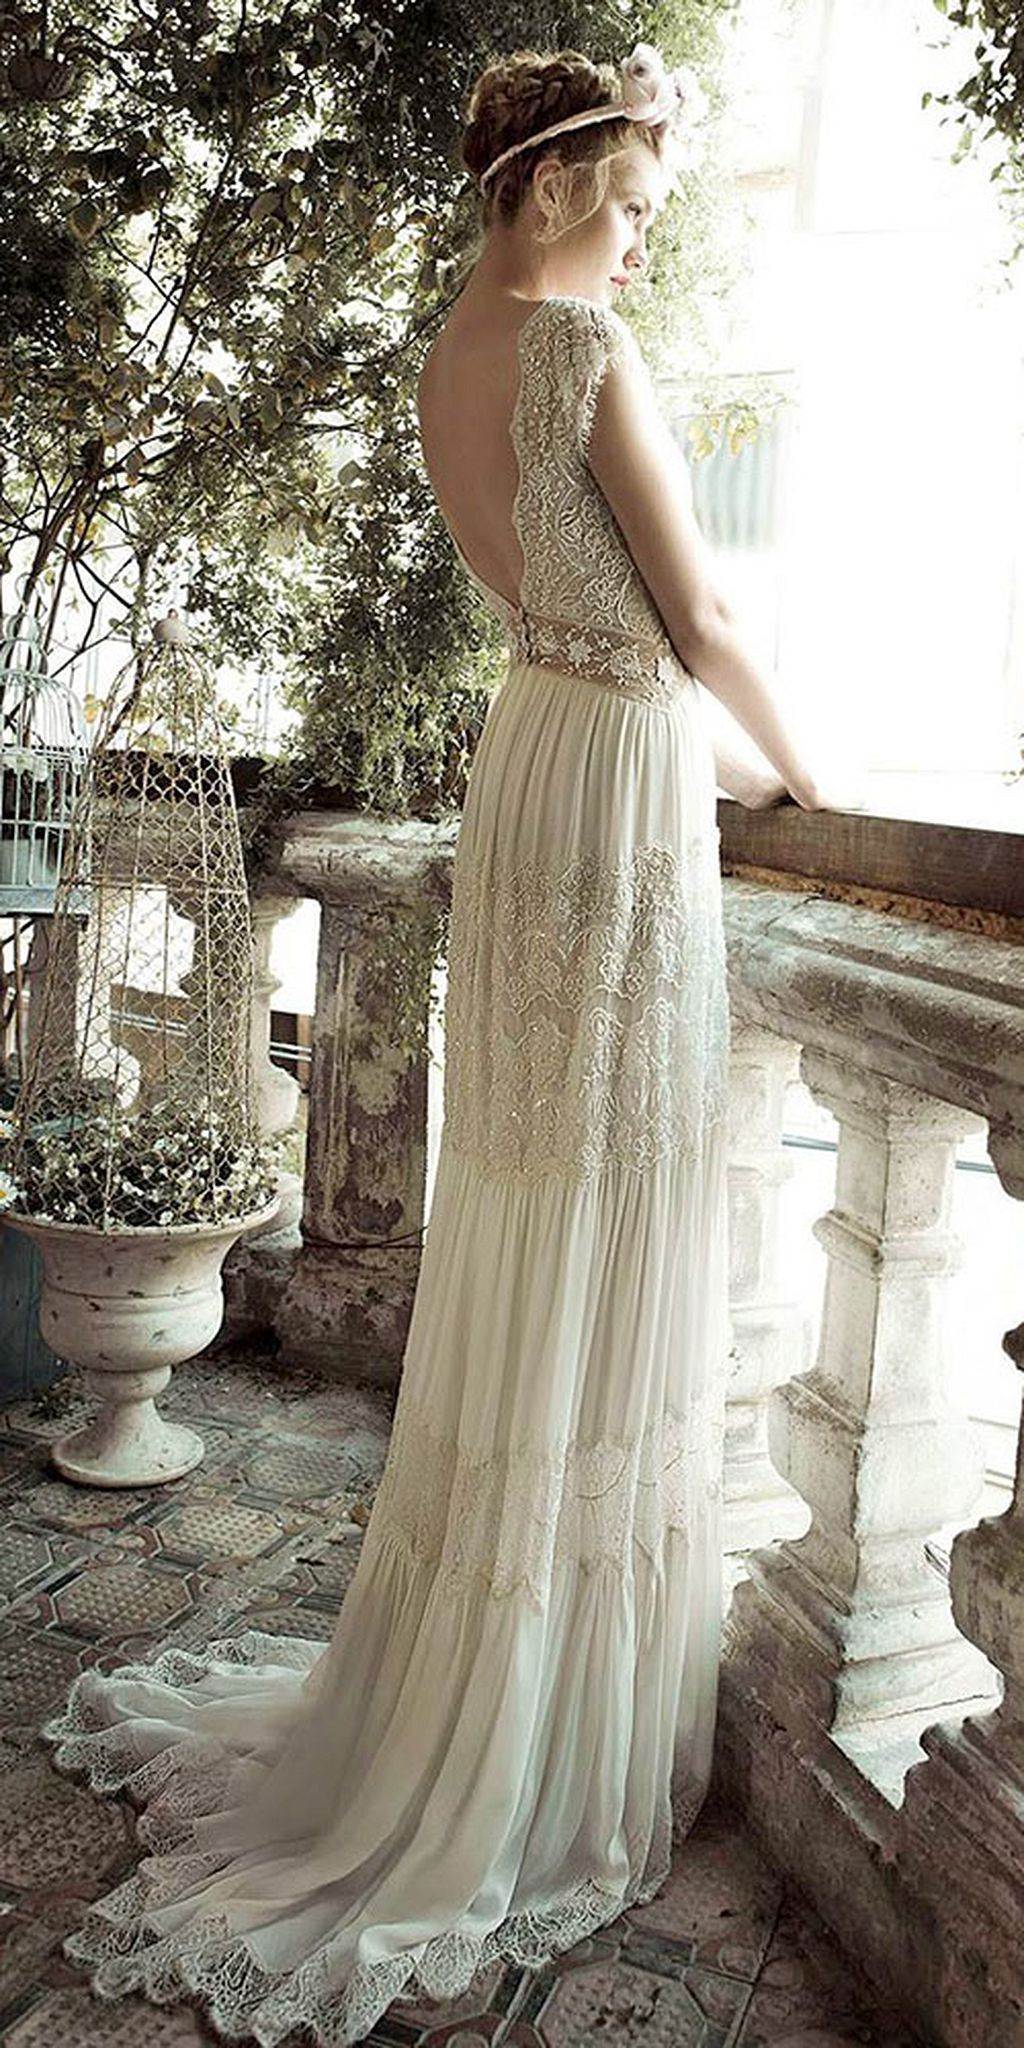 Retro wedding dress  cool  Vintage Wedding Dress Ideas weddmagz